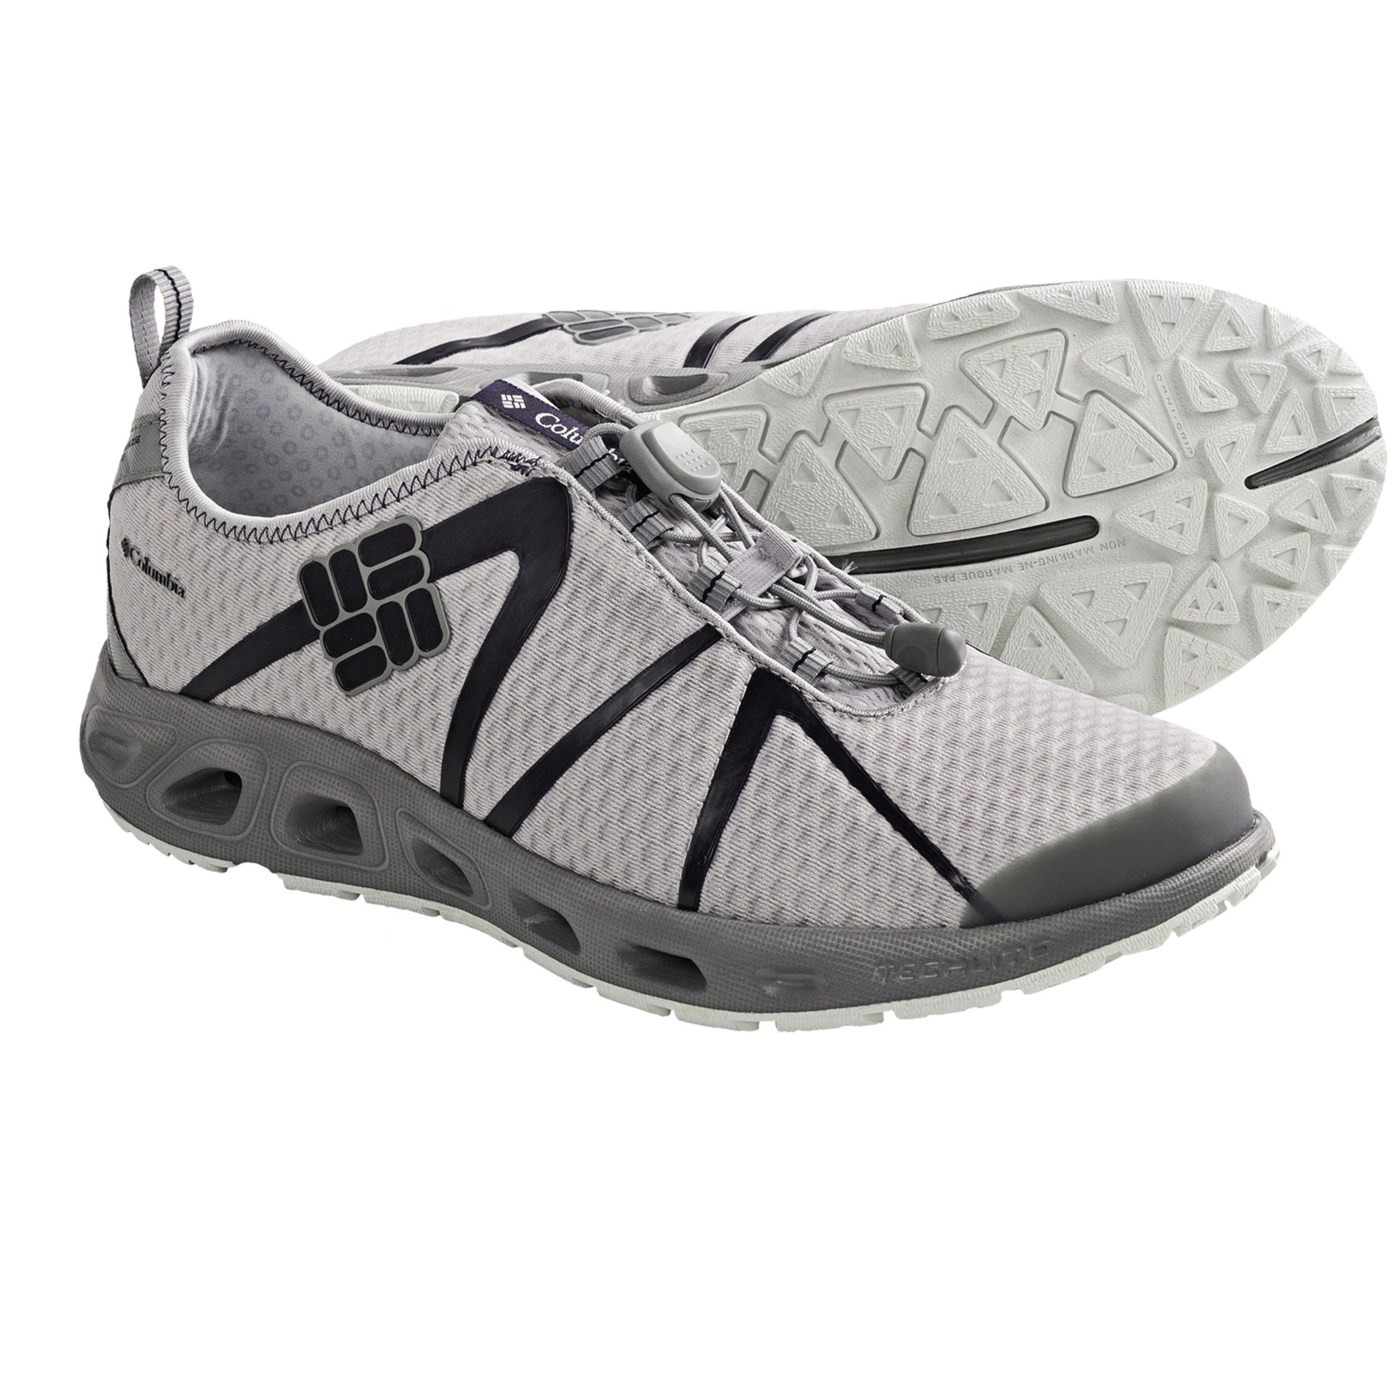 c542425c1bfb Columbia Sportswear Powerdrain Cool PFG Water Shoes (For Men) 6263K ...